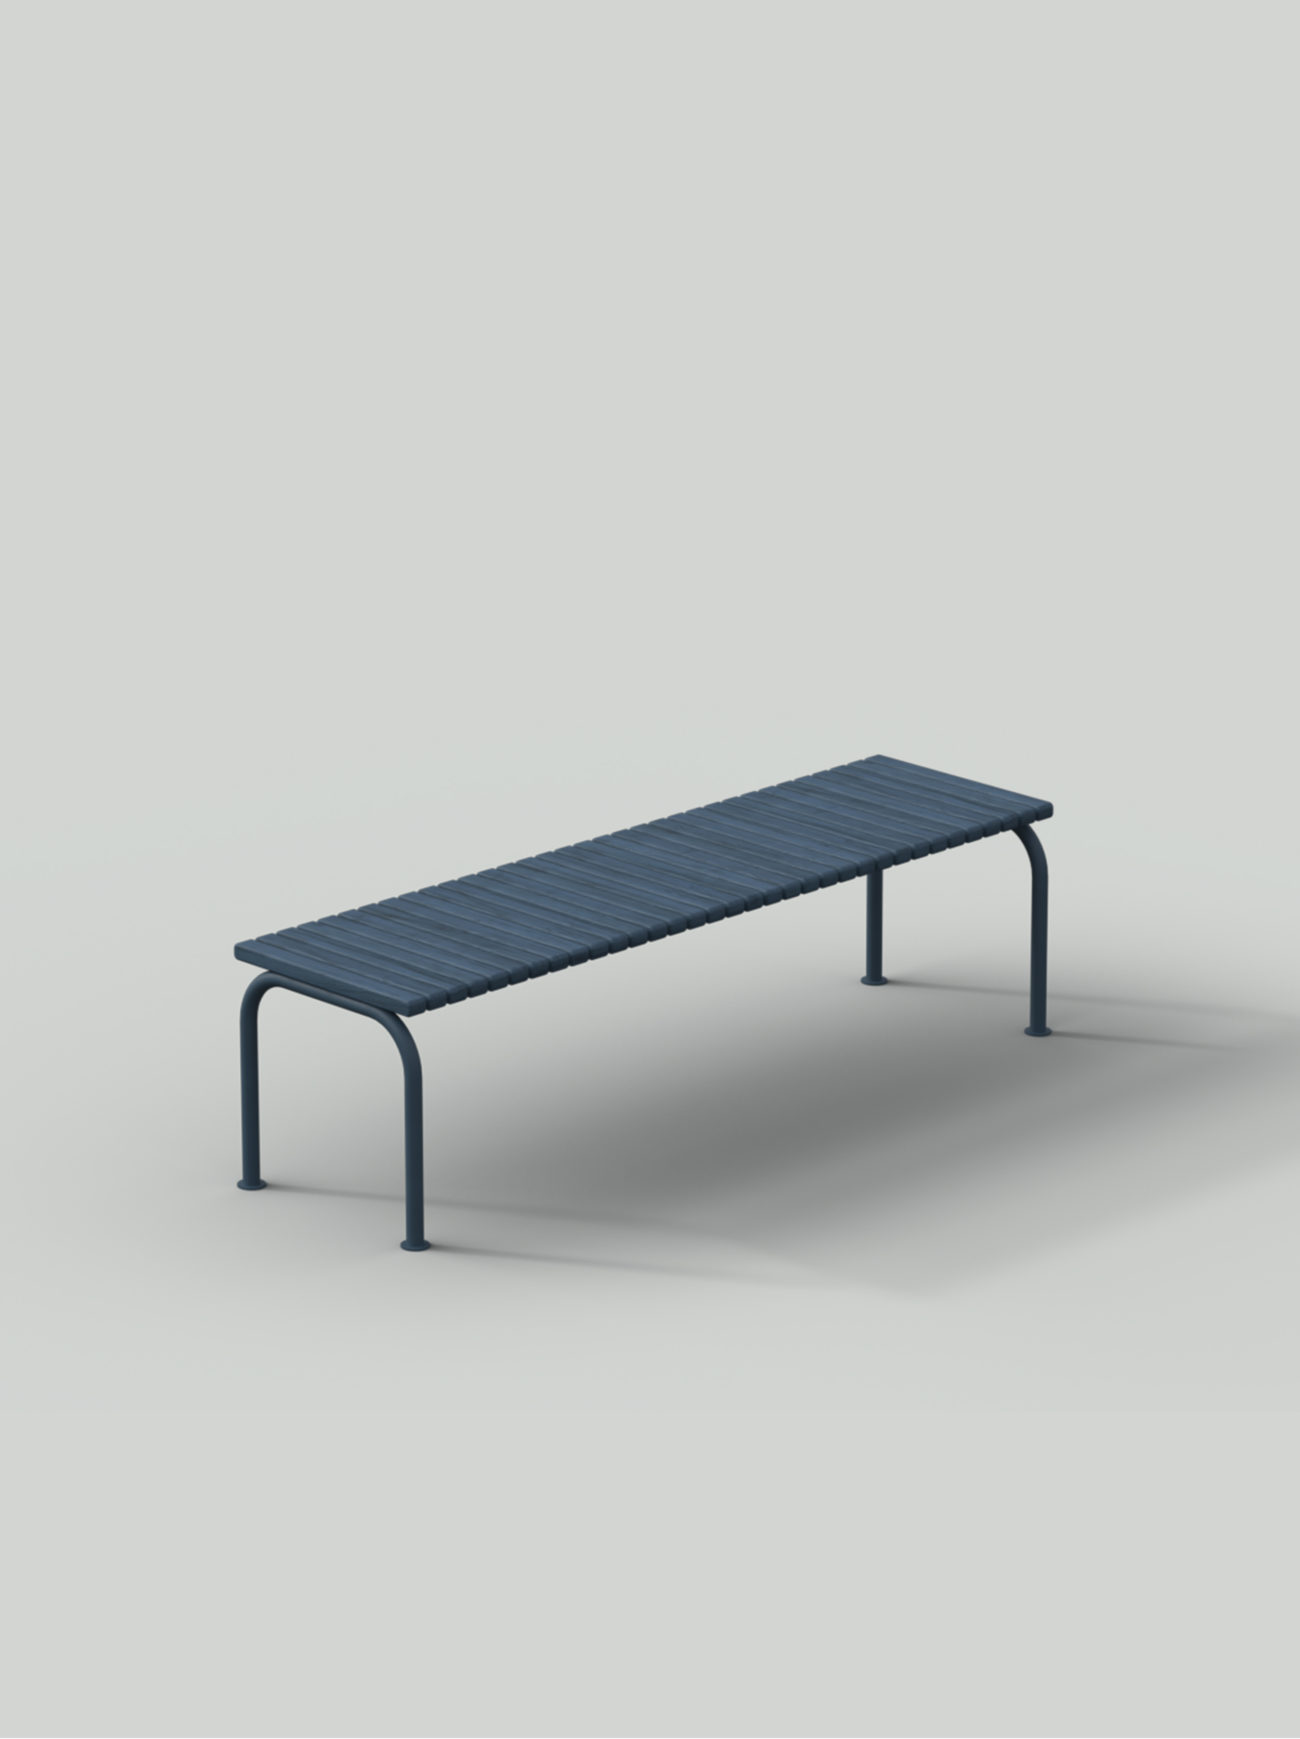 Blue bench with steel frame and wood planks